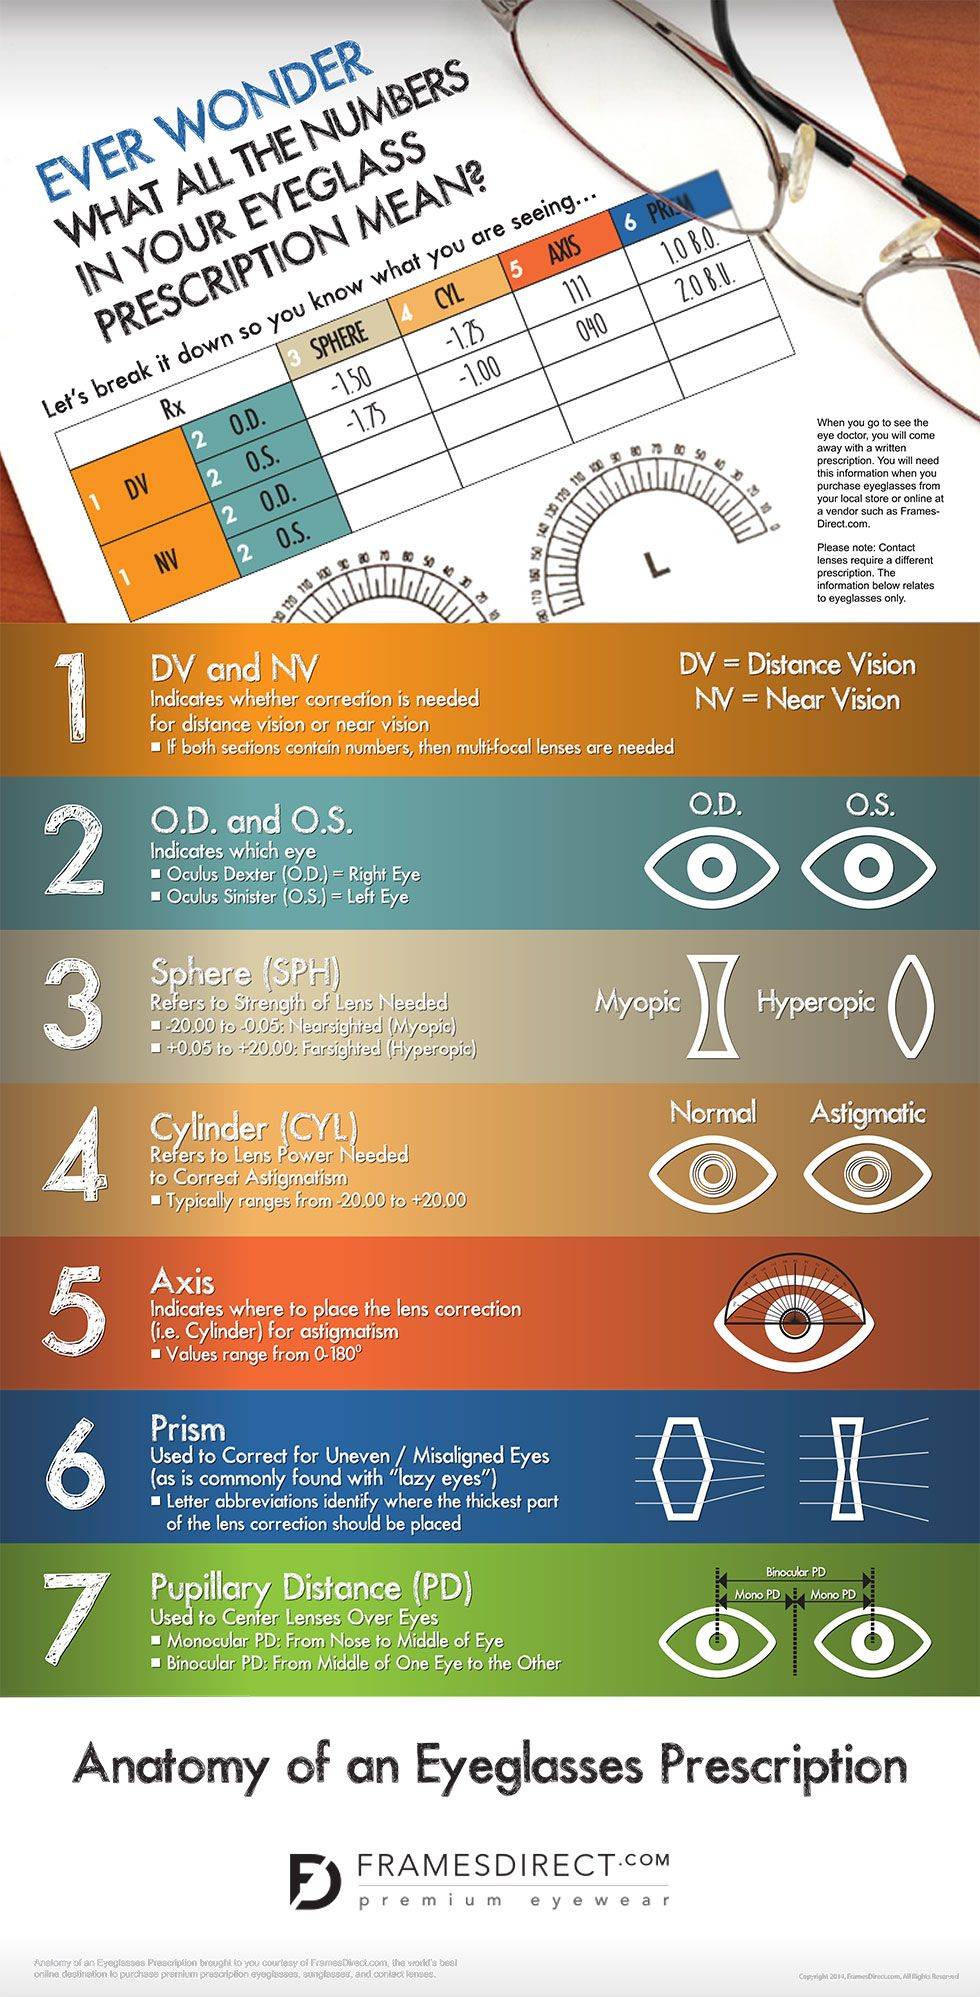 How to Read Your Eyeglasses Prescription FramesDirect.com